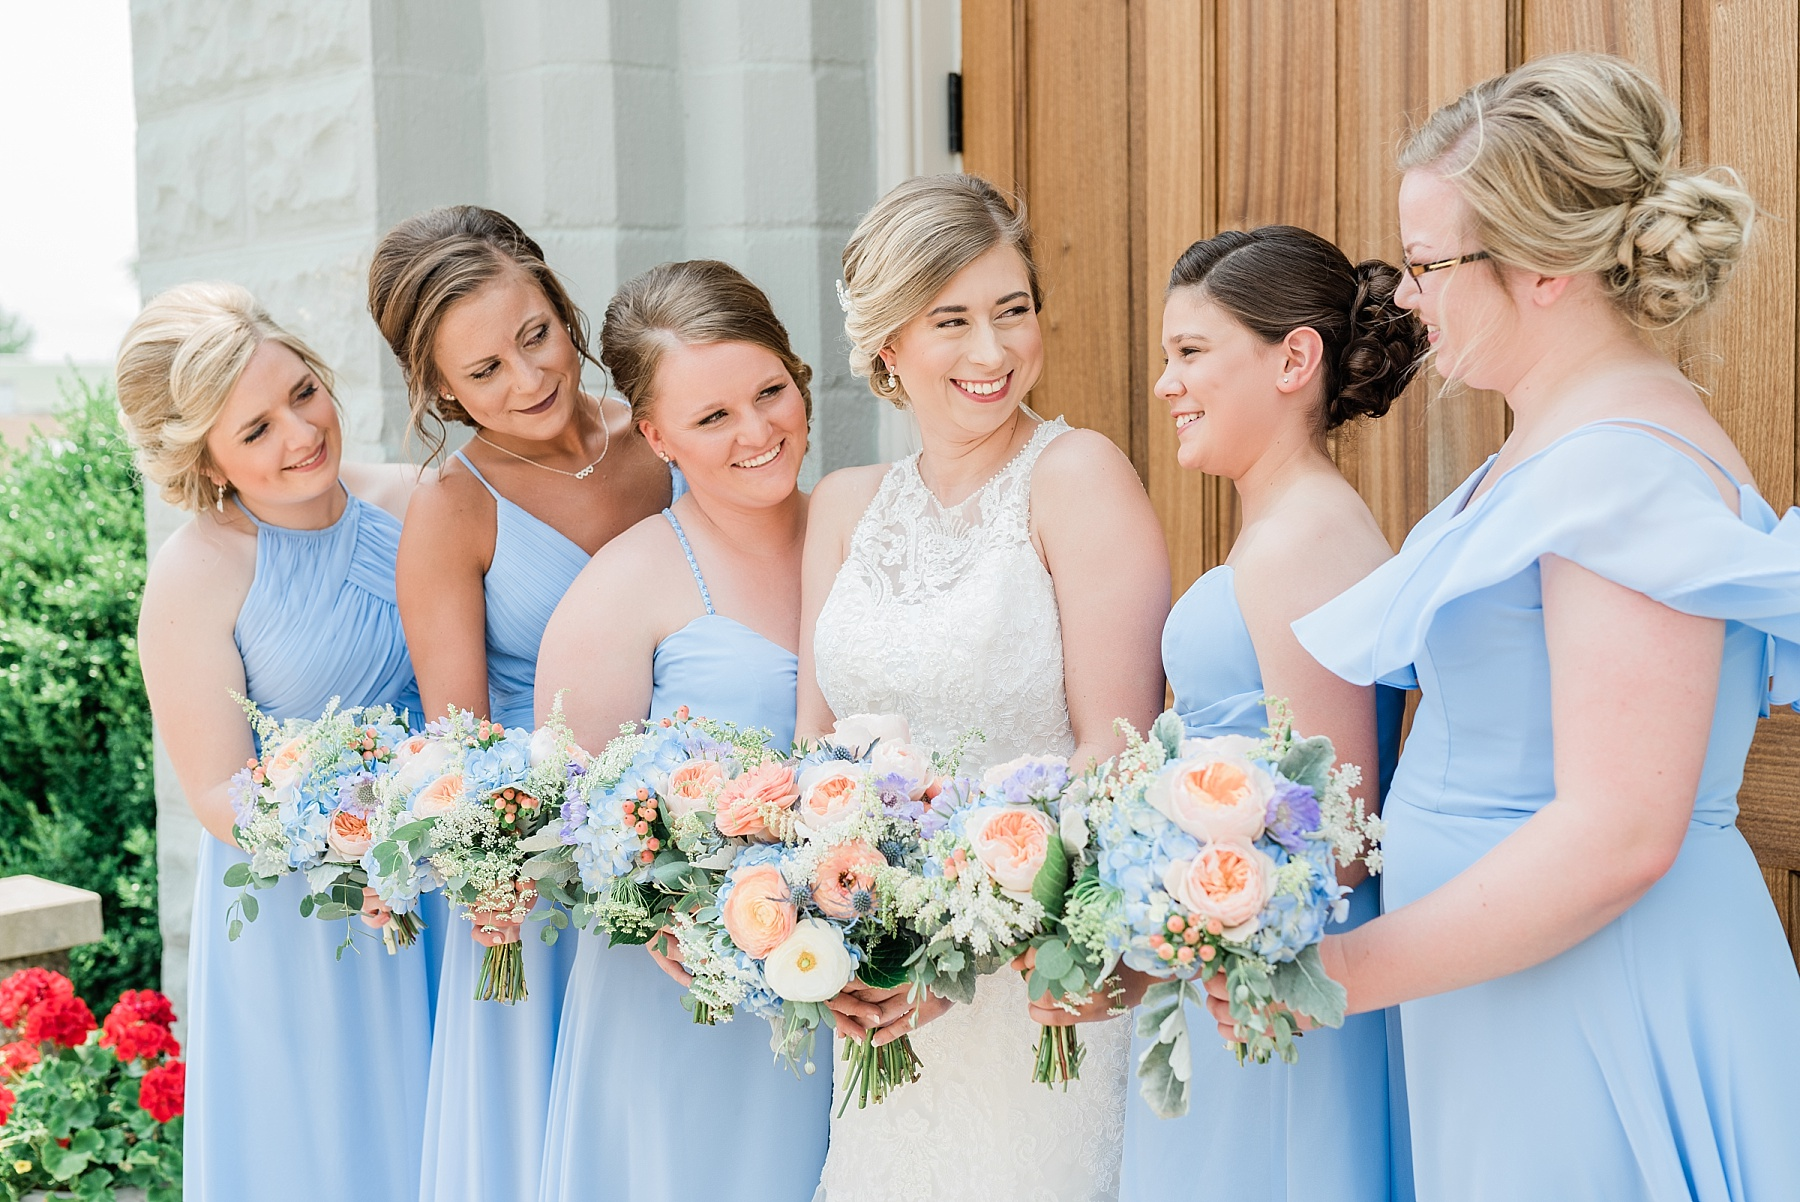 Peach and Dusty Blue Spring Wedding in Rolling Hills of Mid Missouri by Kelsi Kliethermes Photography Best Missouri and Maui Wedding Photographer_0008.jpg